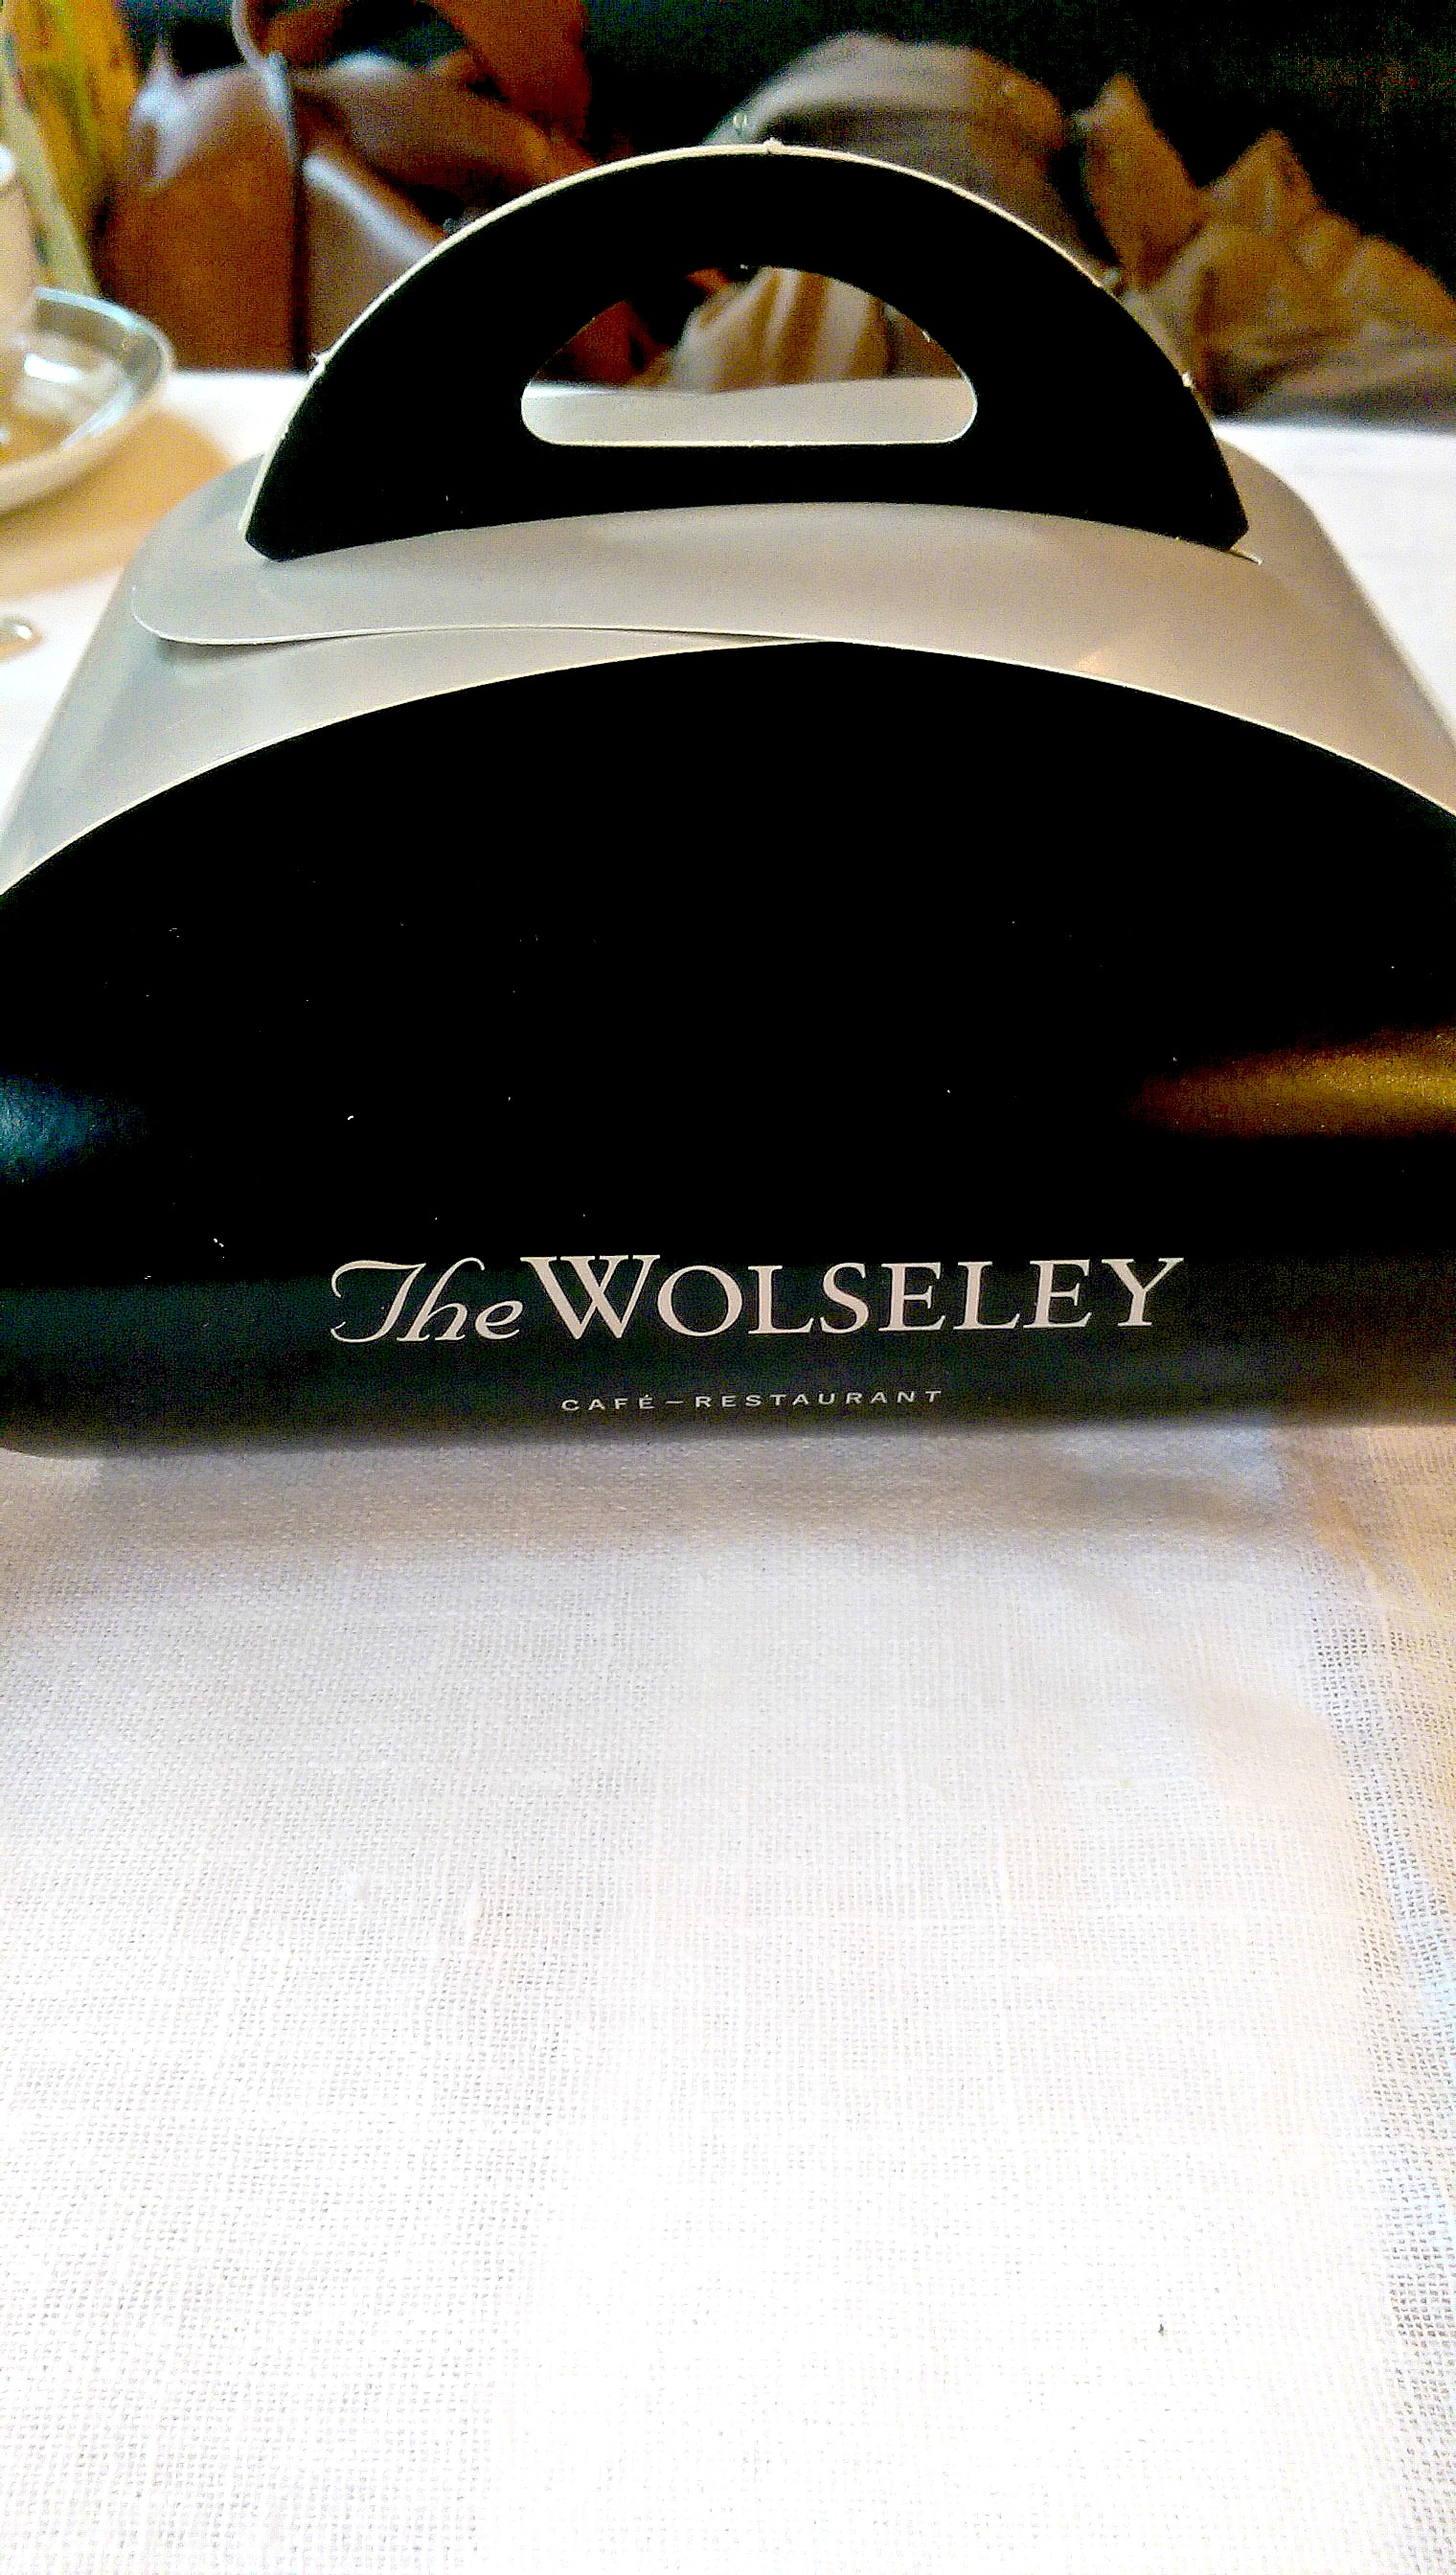 The Wolseley bag